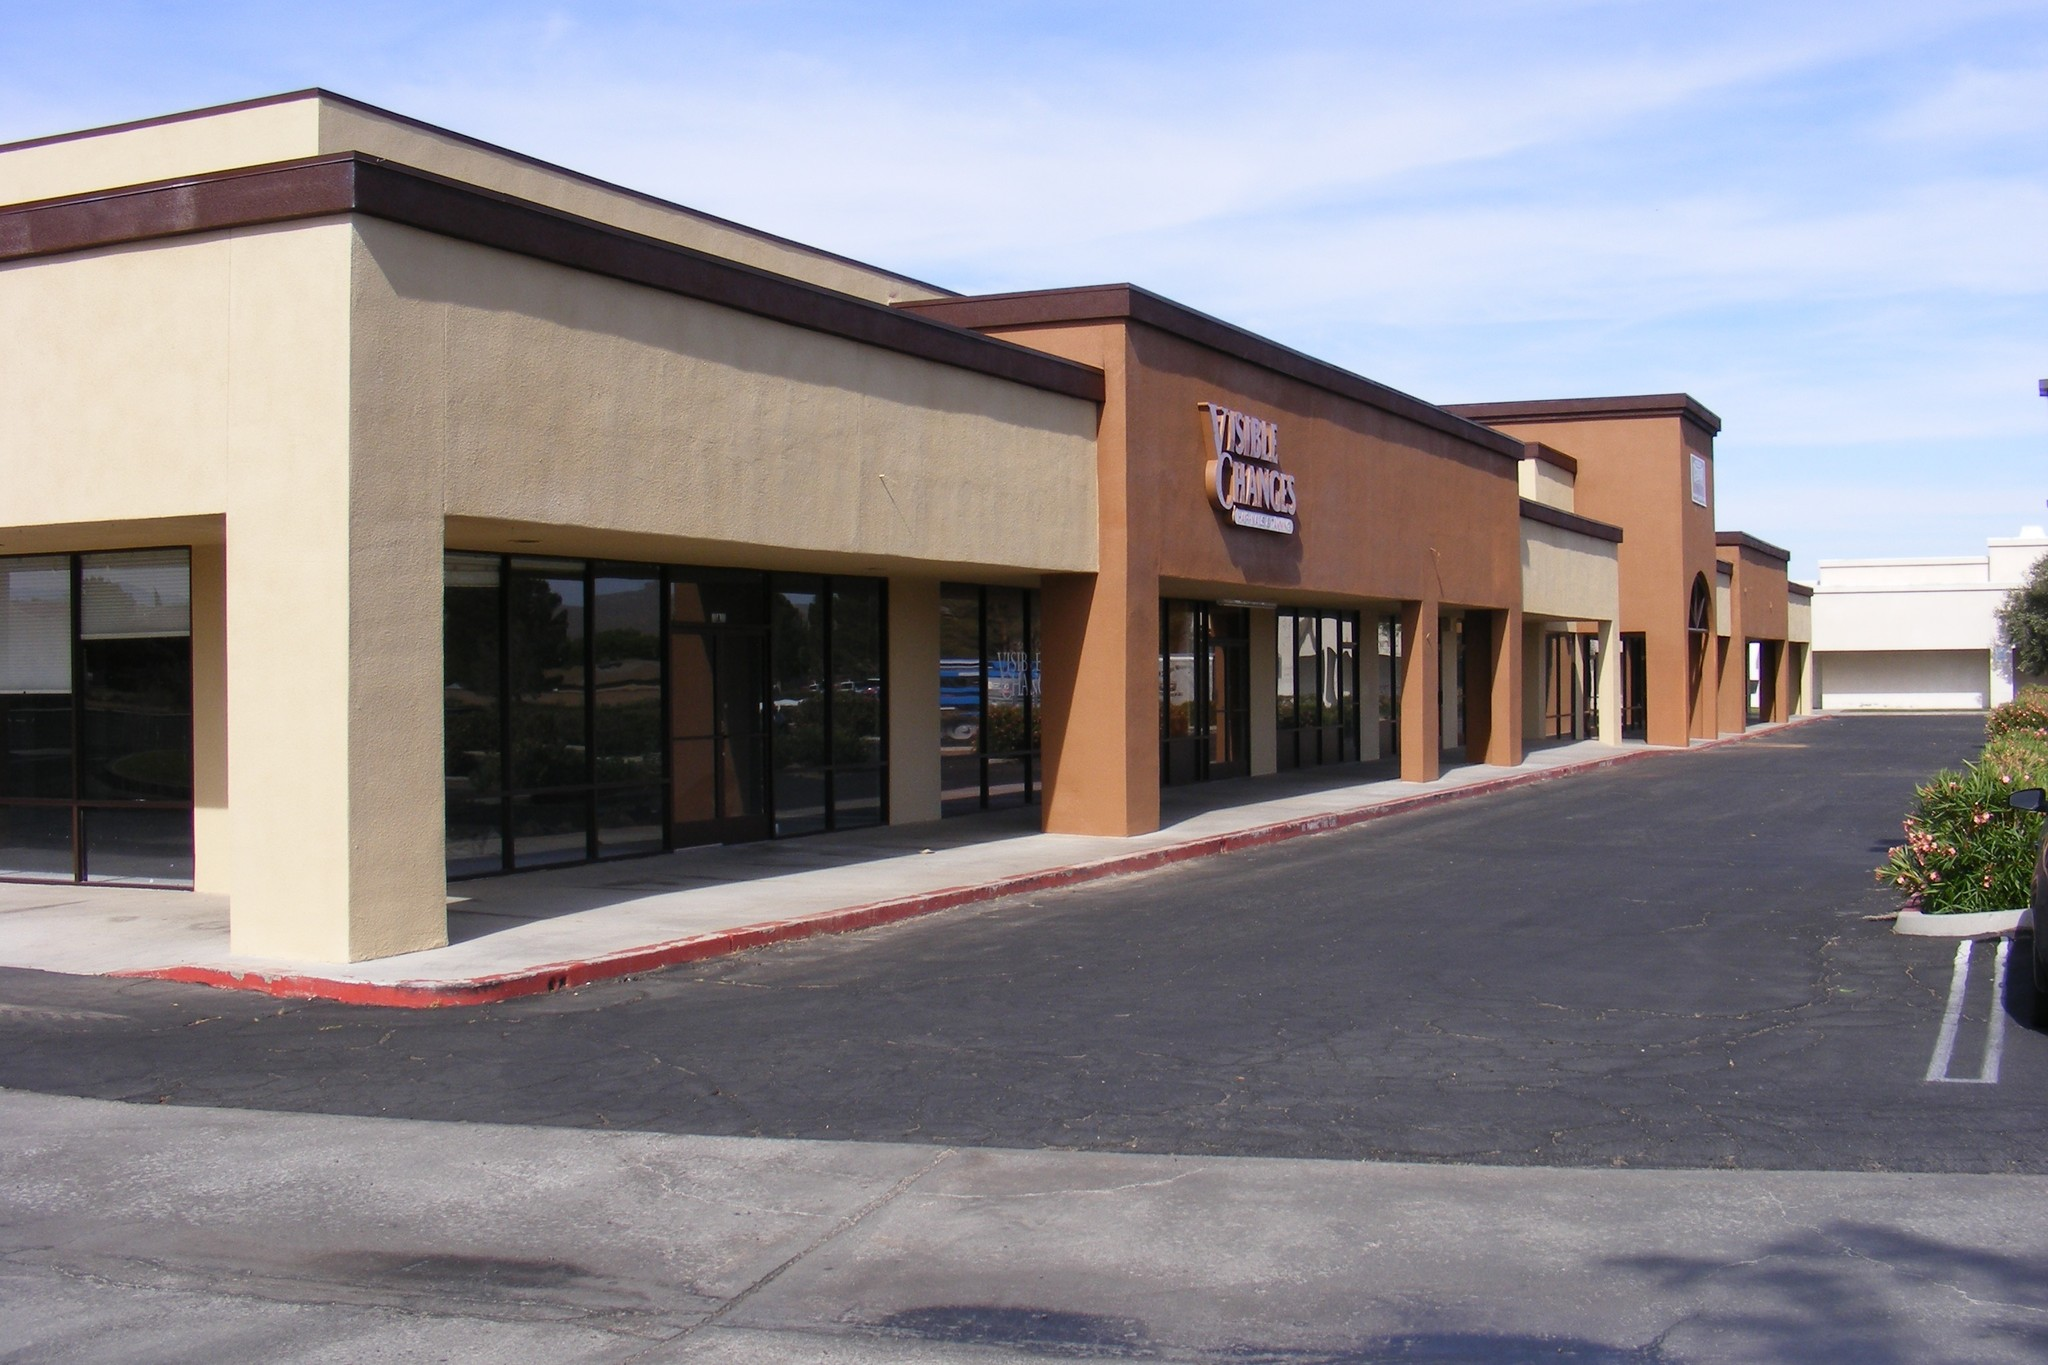 showcase commercial real estate for lease and for sale